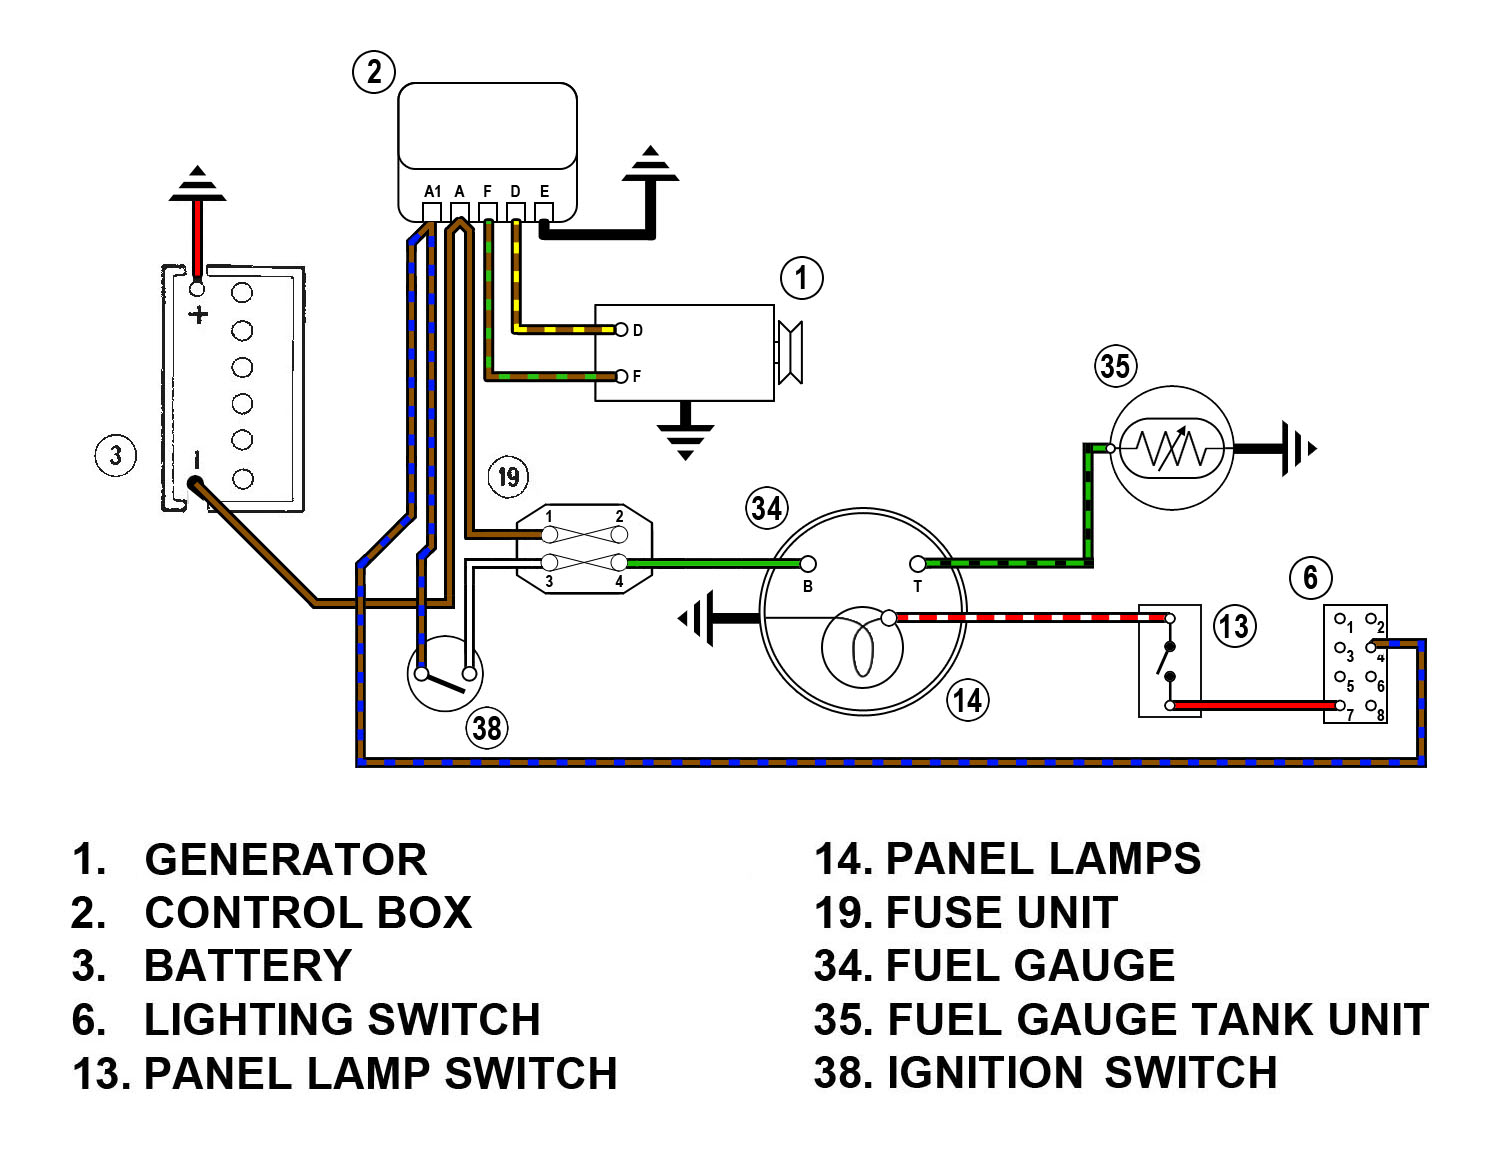 wiring fuel gauge online schematic diagram u2022 rh holyoak co Jeep CJ5 Wiring -Diagram Jeep CJ7 Wiring -Diagram